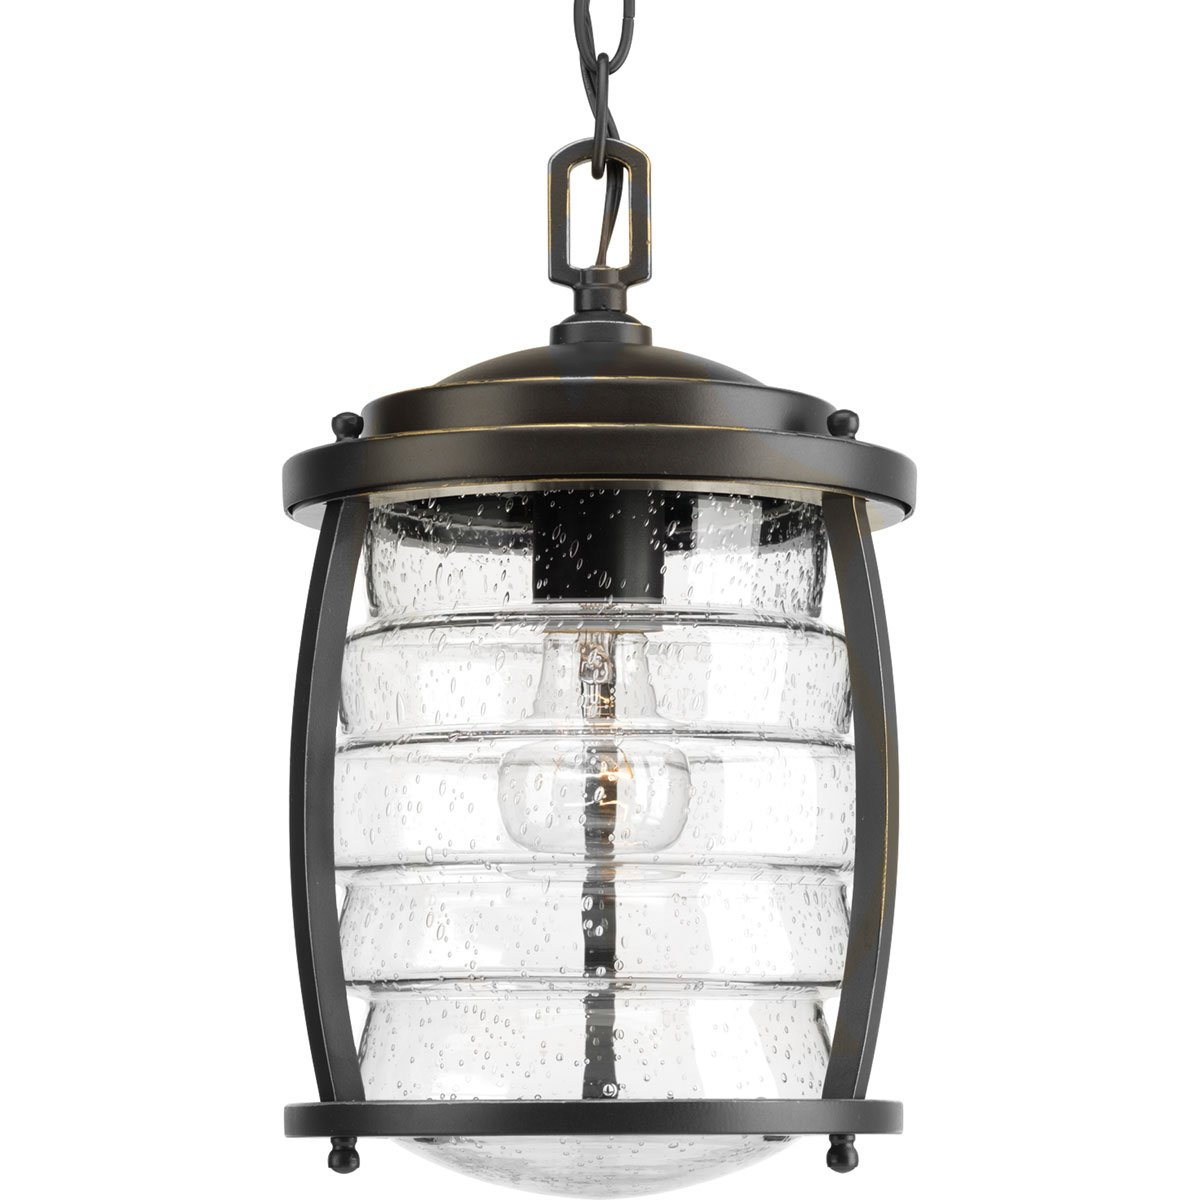 Progress Lighting P5521-108 Traditional/Casual 1-100W Med Hanging Lantern, Oil Rubbed Bronze